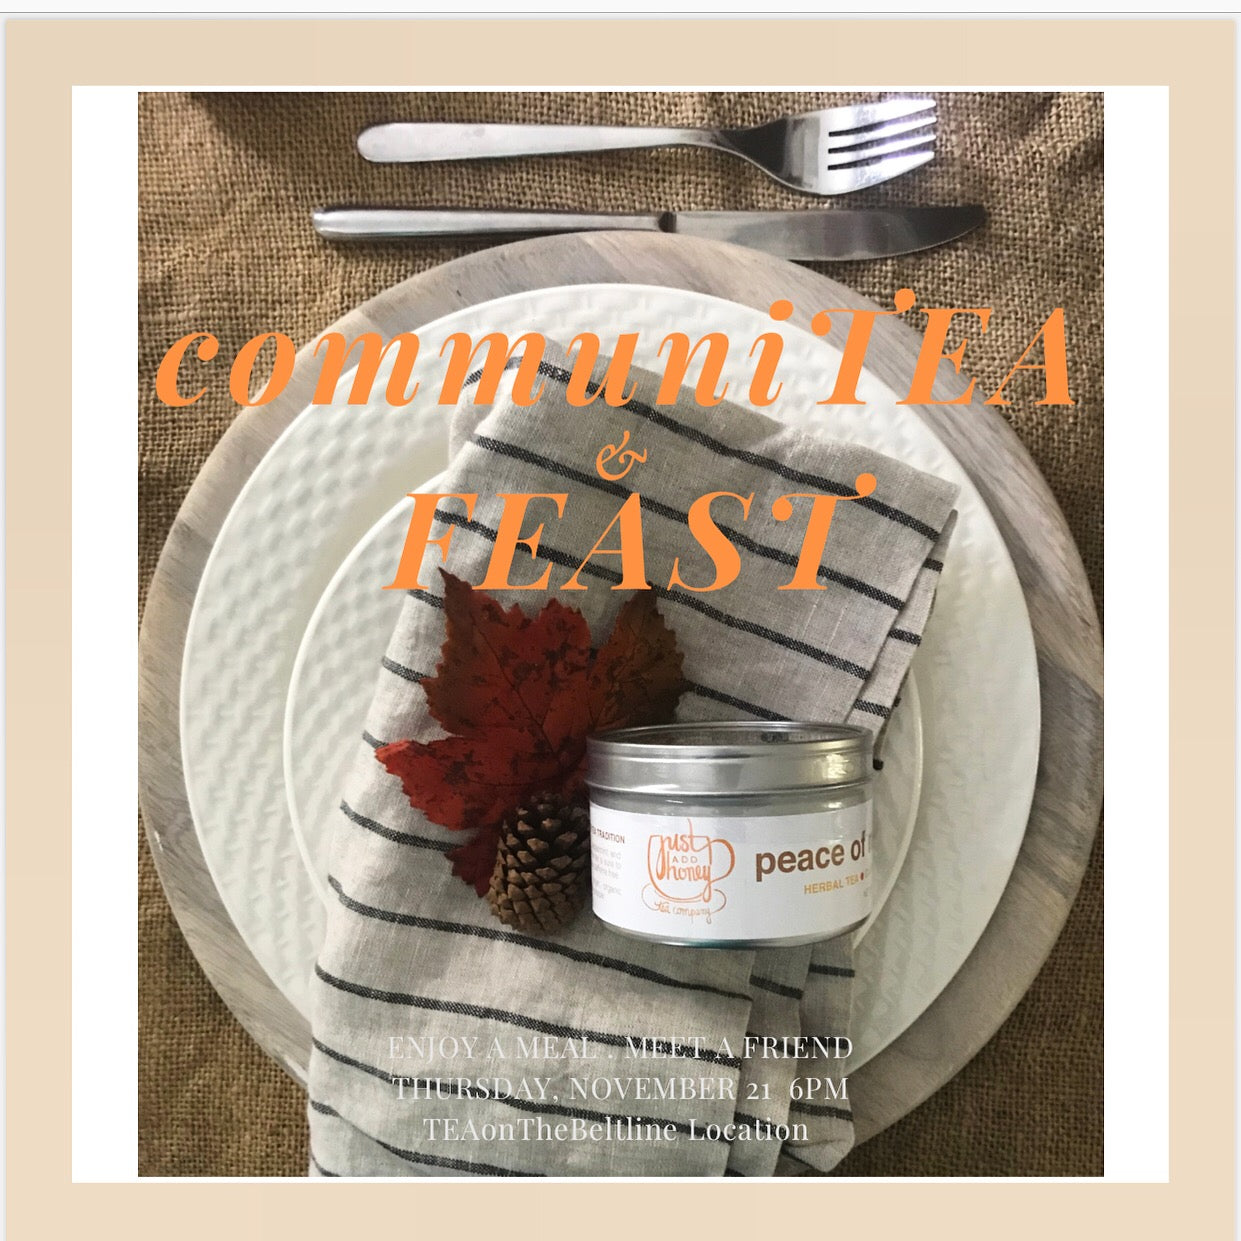 communiTEA and FEAST